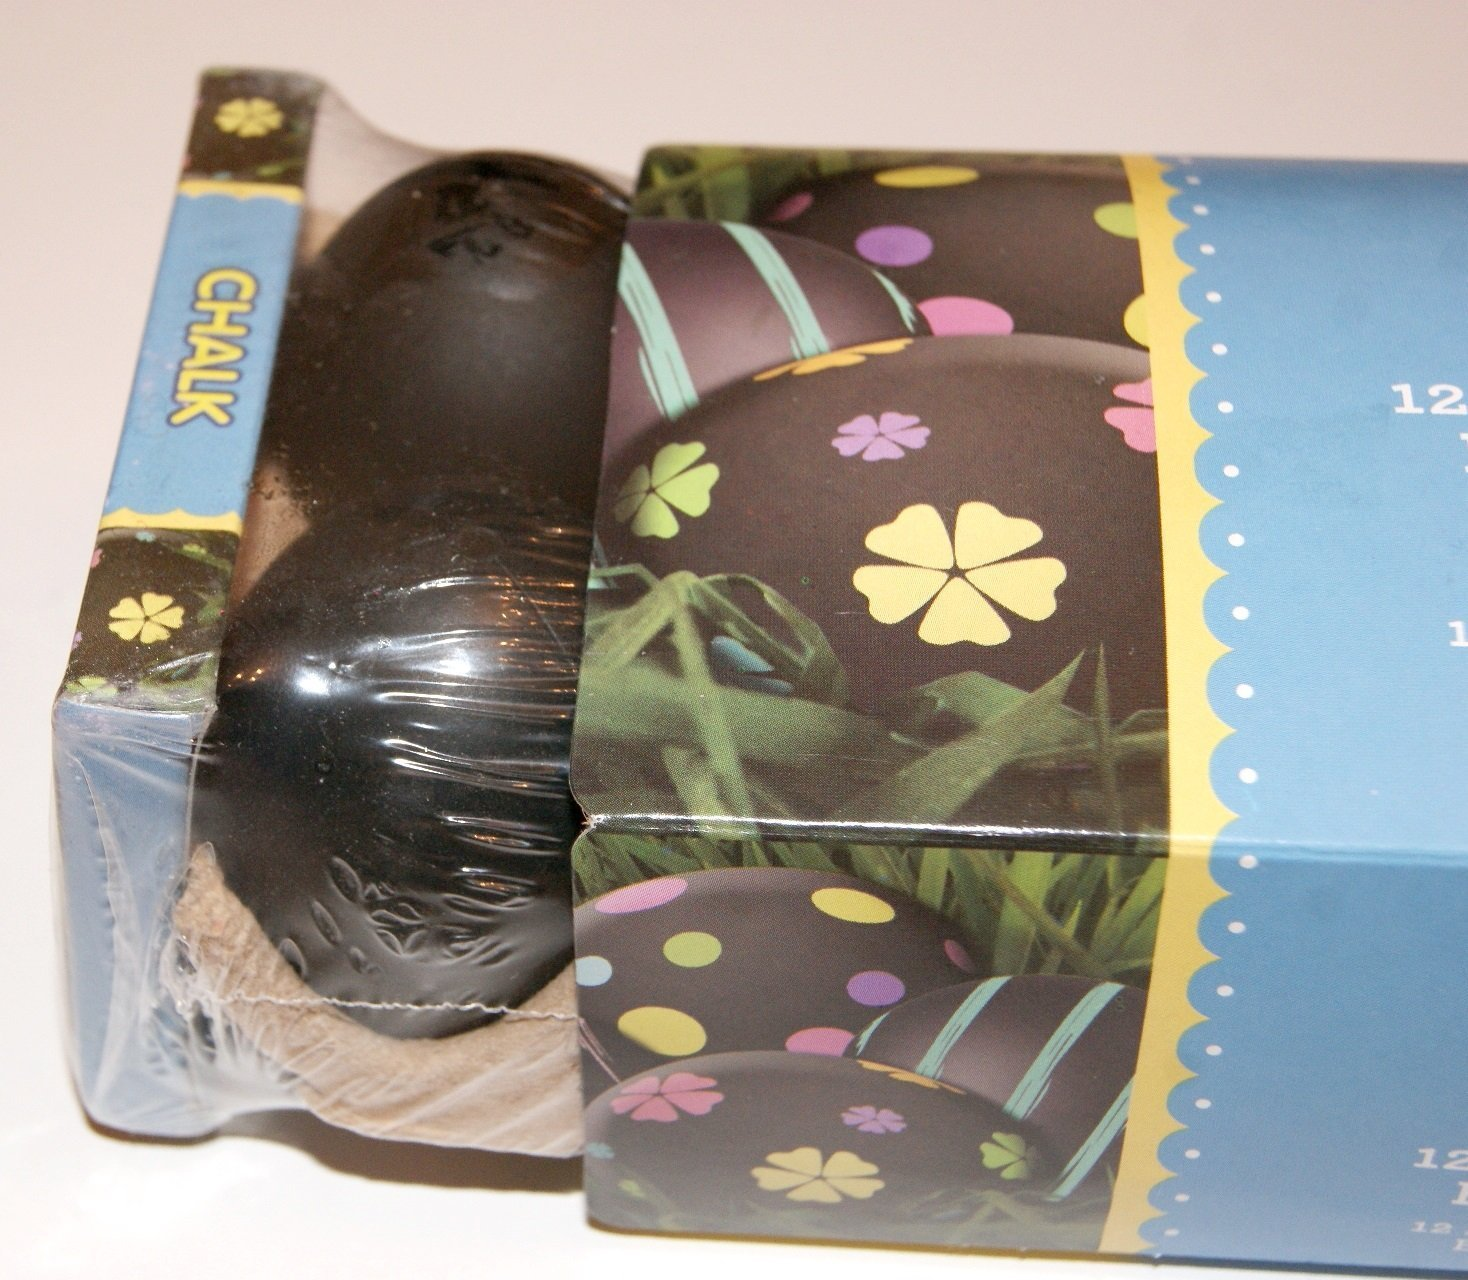 3 pack of 12 Chalk Board Black Non Fillable Plastic Easter Eggs with Chalk by Walmart (Image #2)